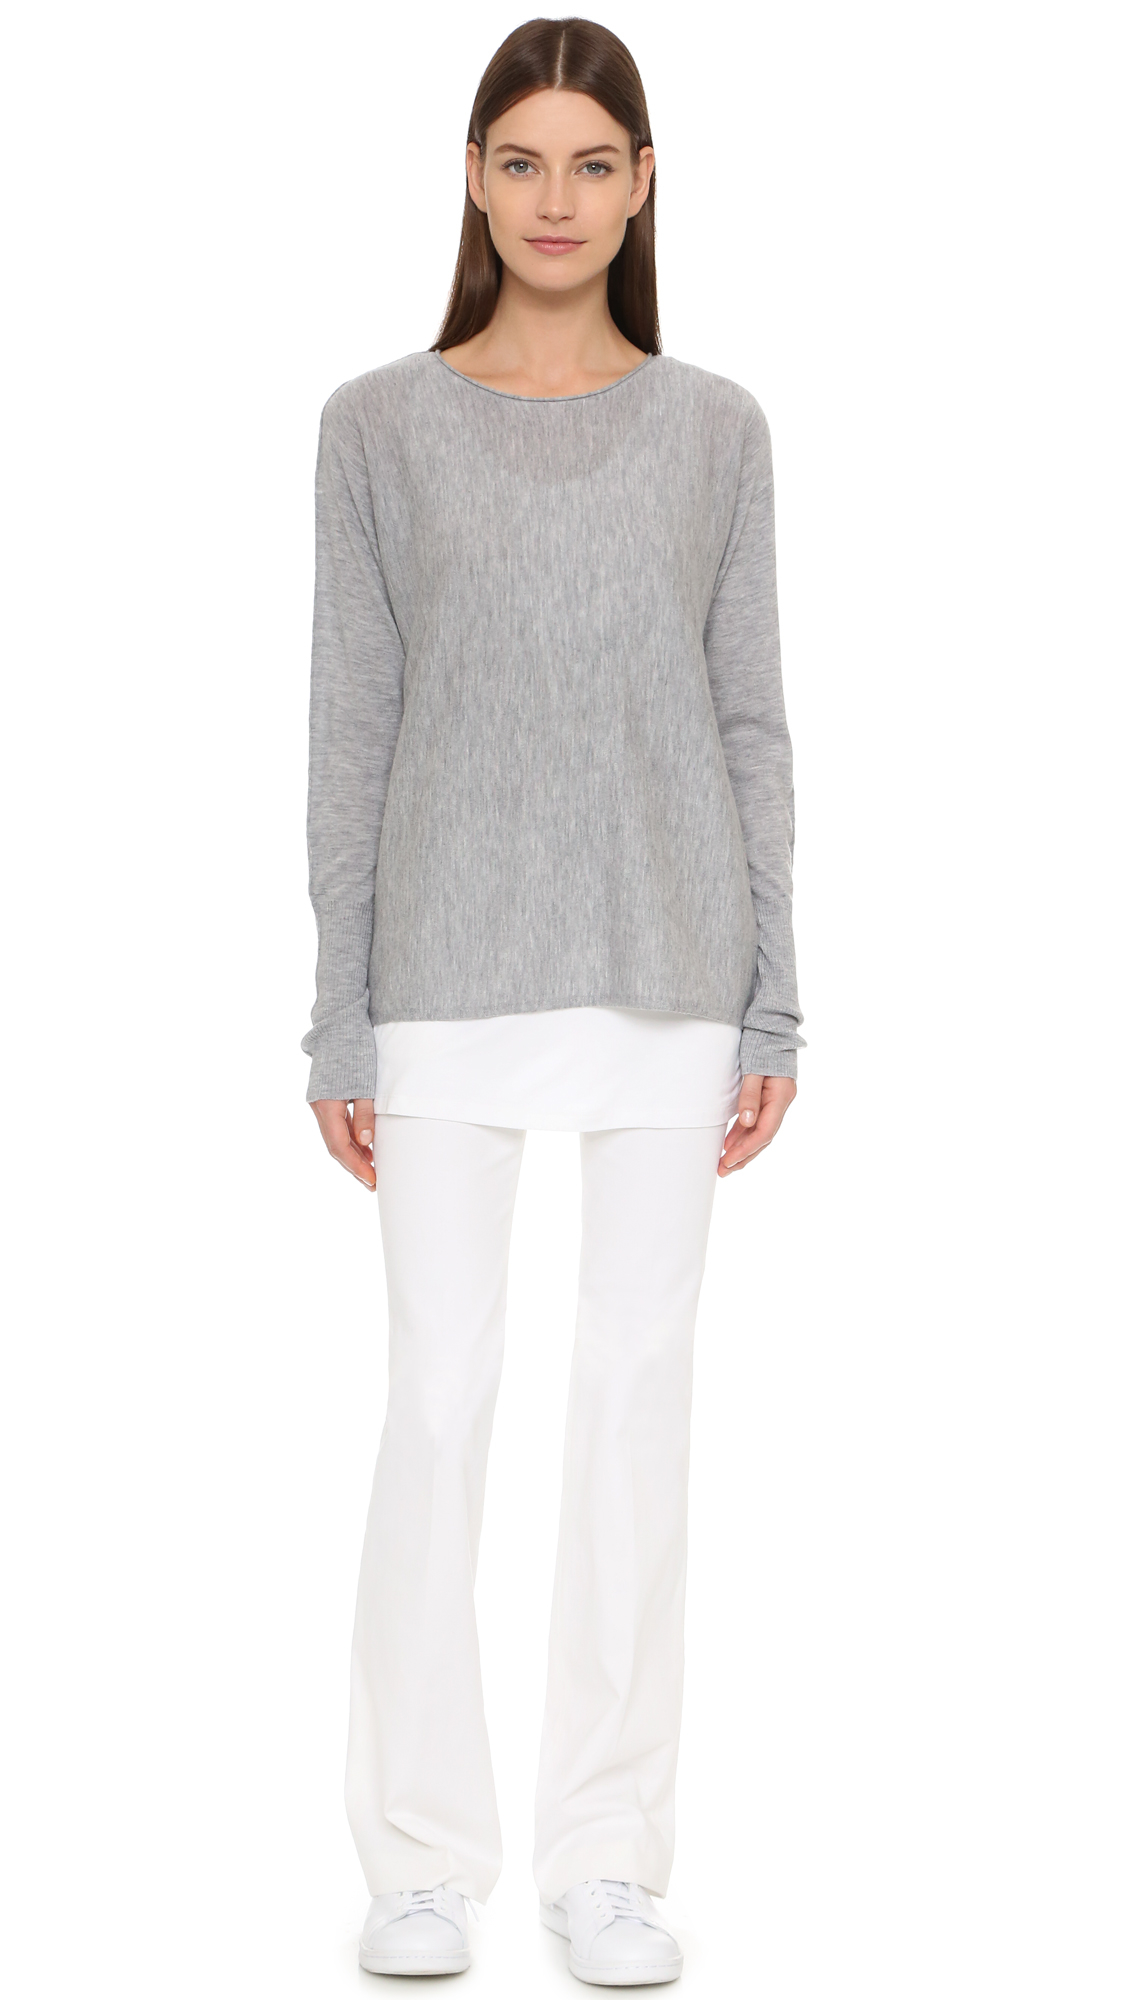 Tess Deb S Science: Tess Giberson Cashmere Slouchy Sweater In Gray